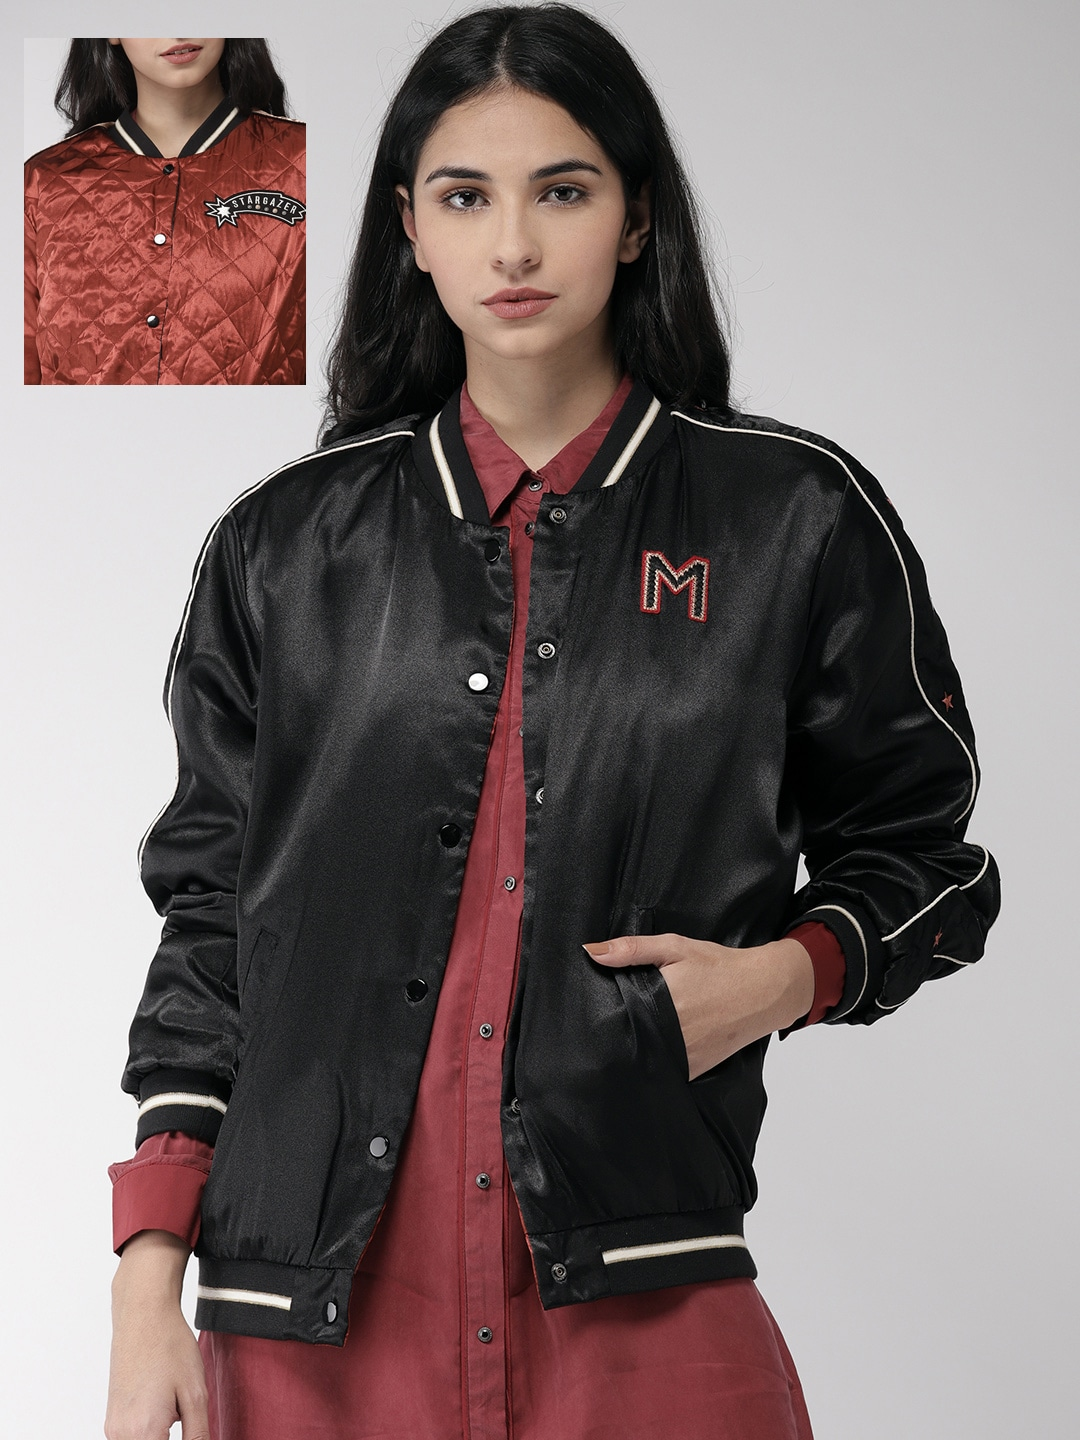 59681f193c4 Jackets for Women - Buy Casual Leather Jackets for Women Online